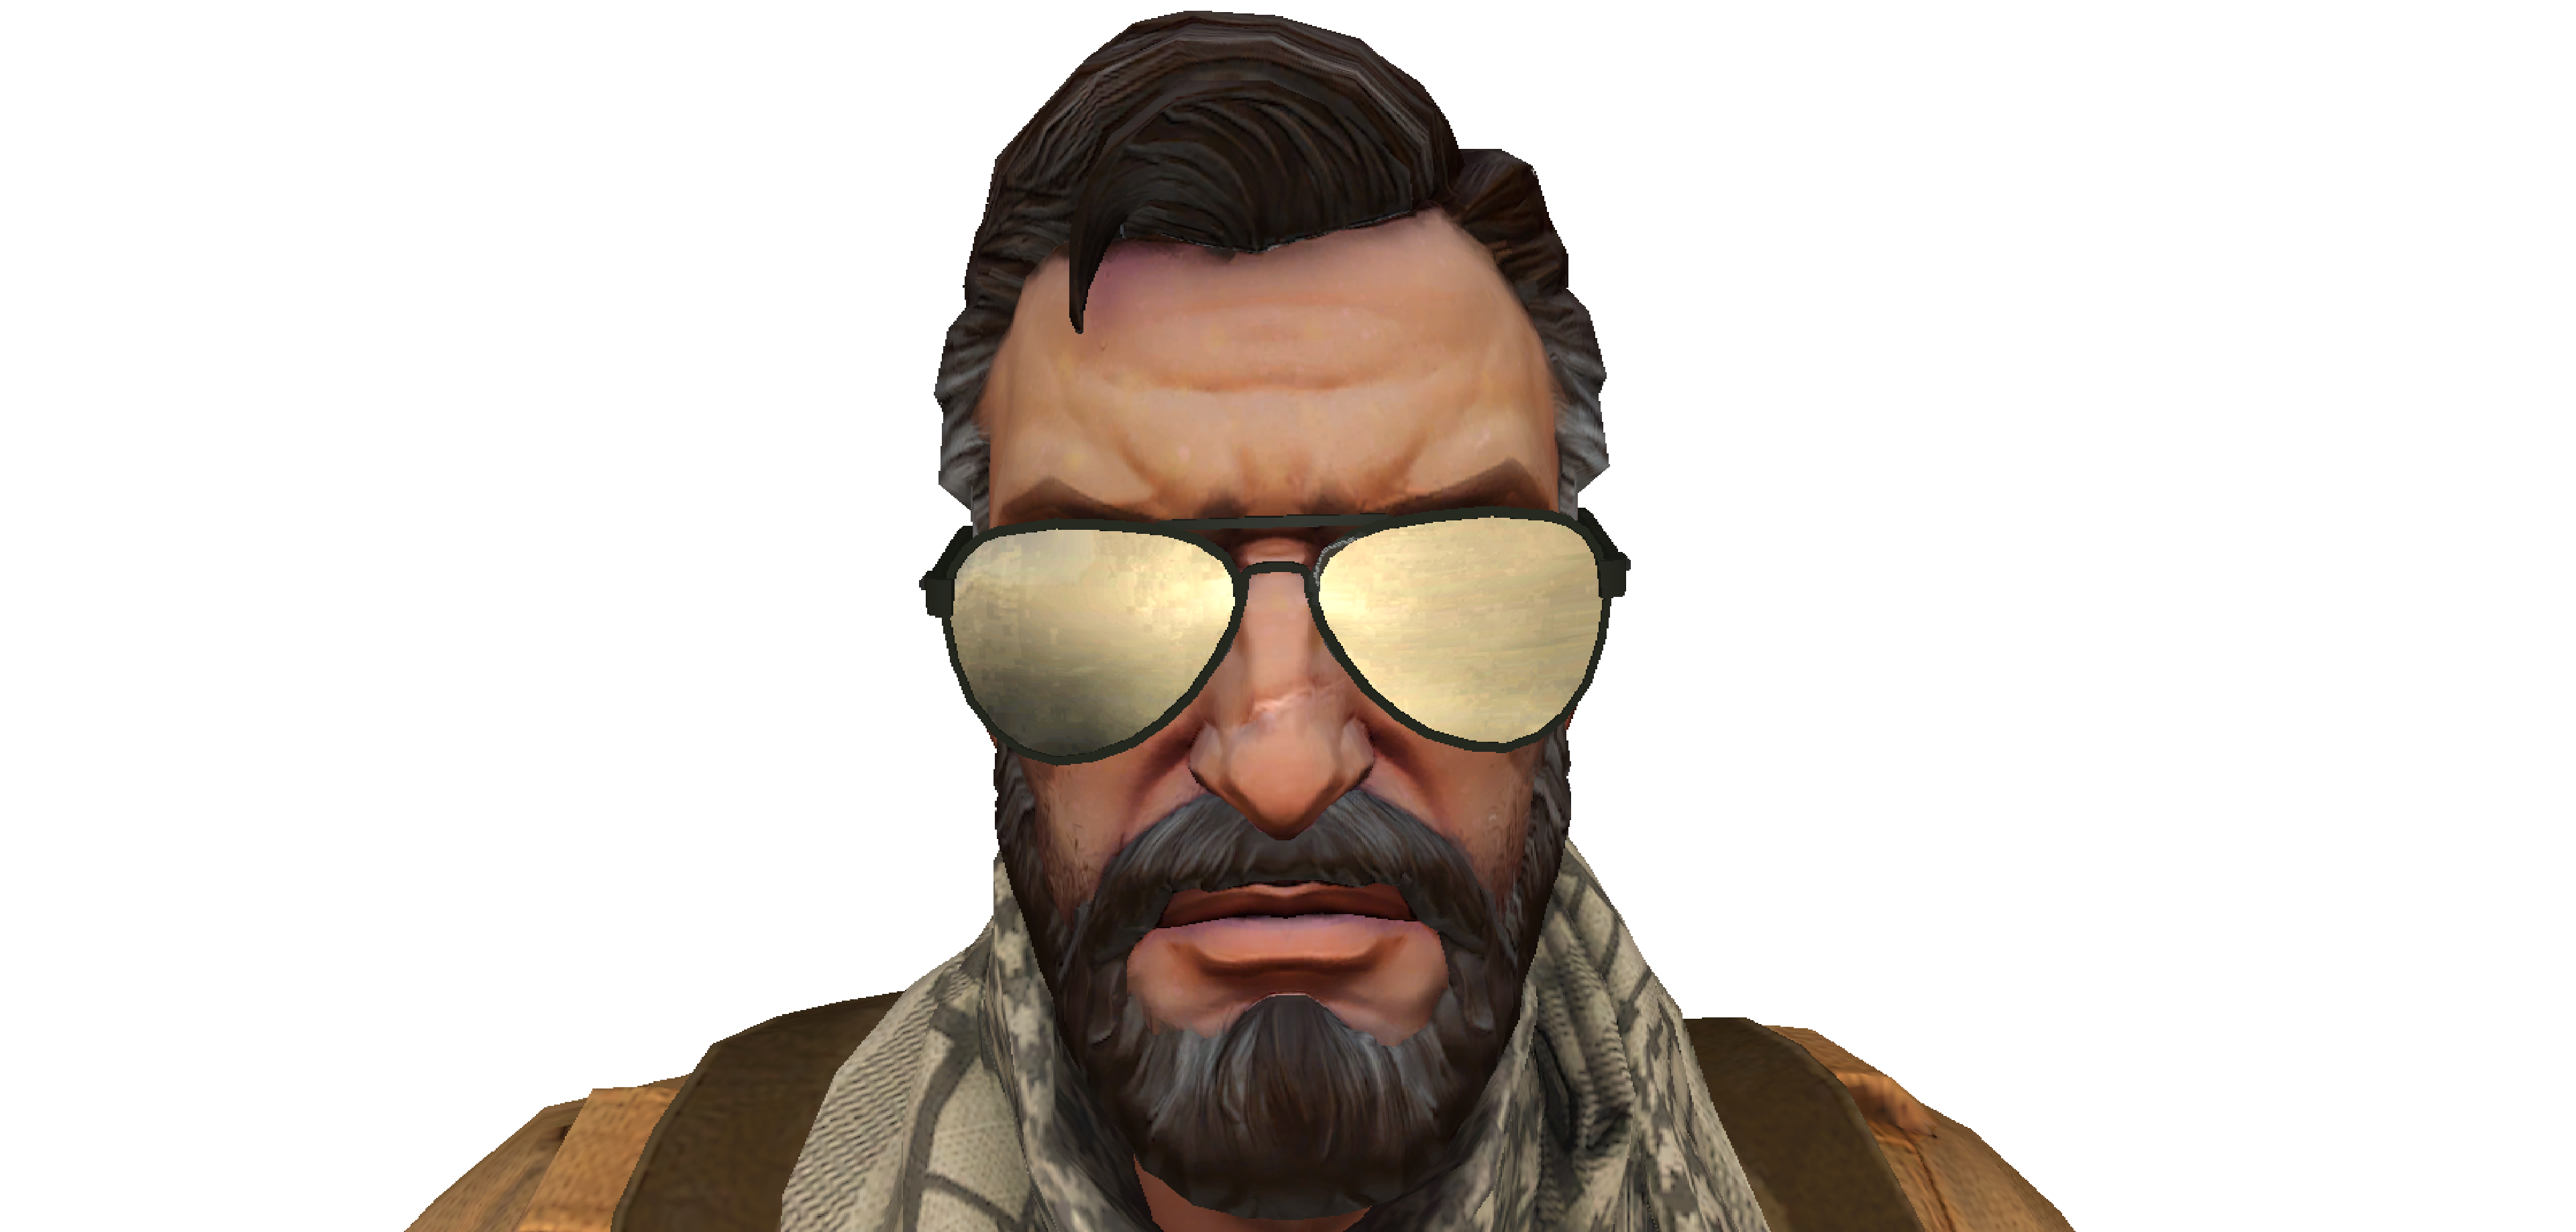 Csgo terrorist head png. Let s give this